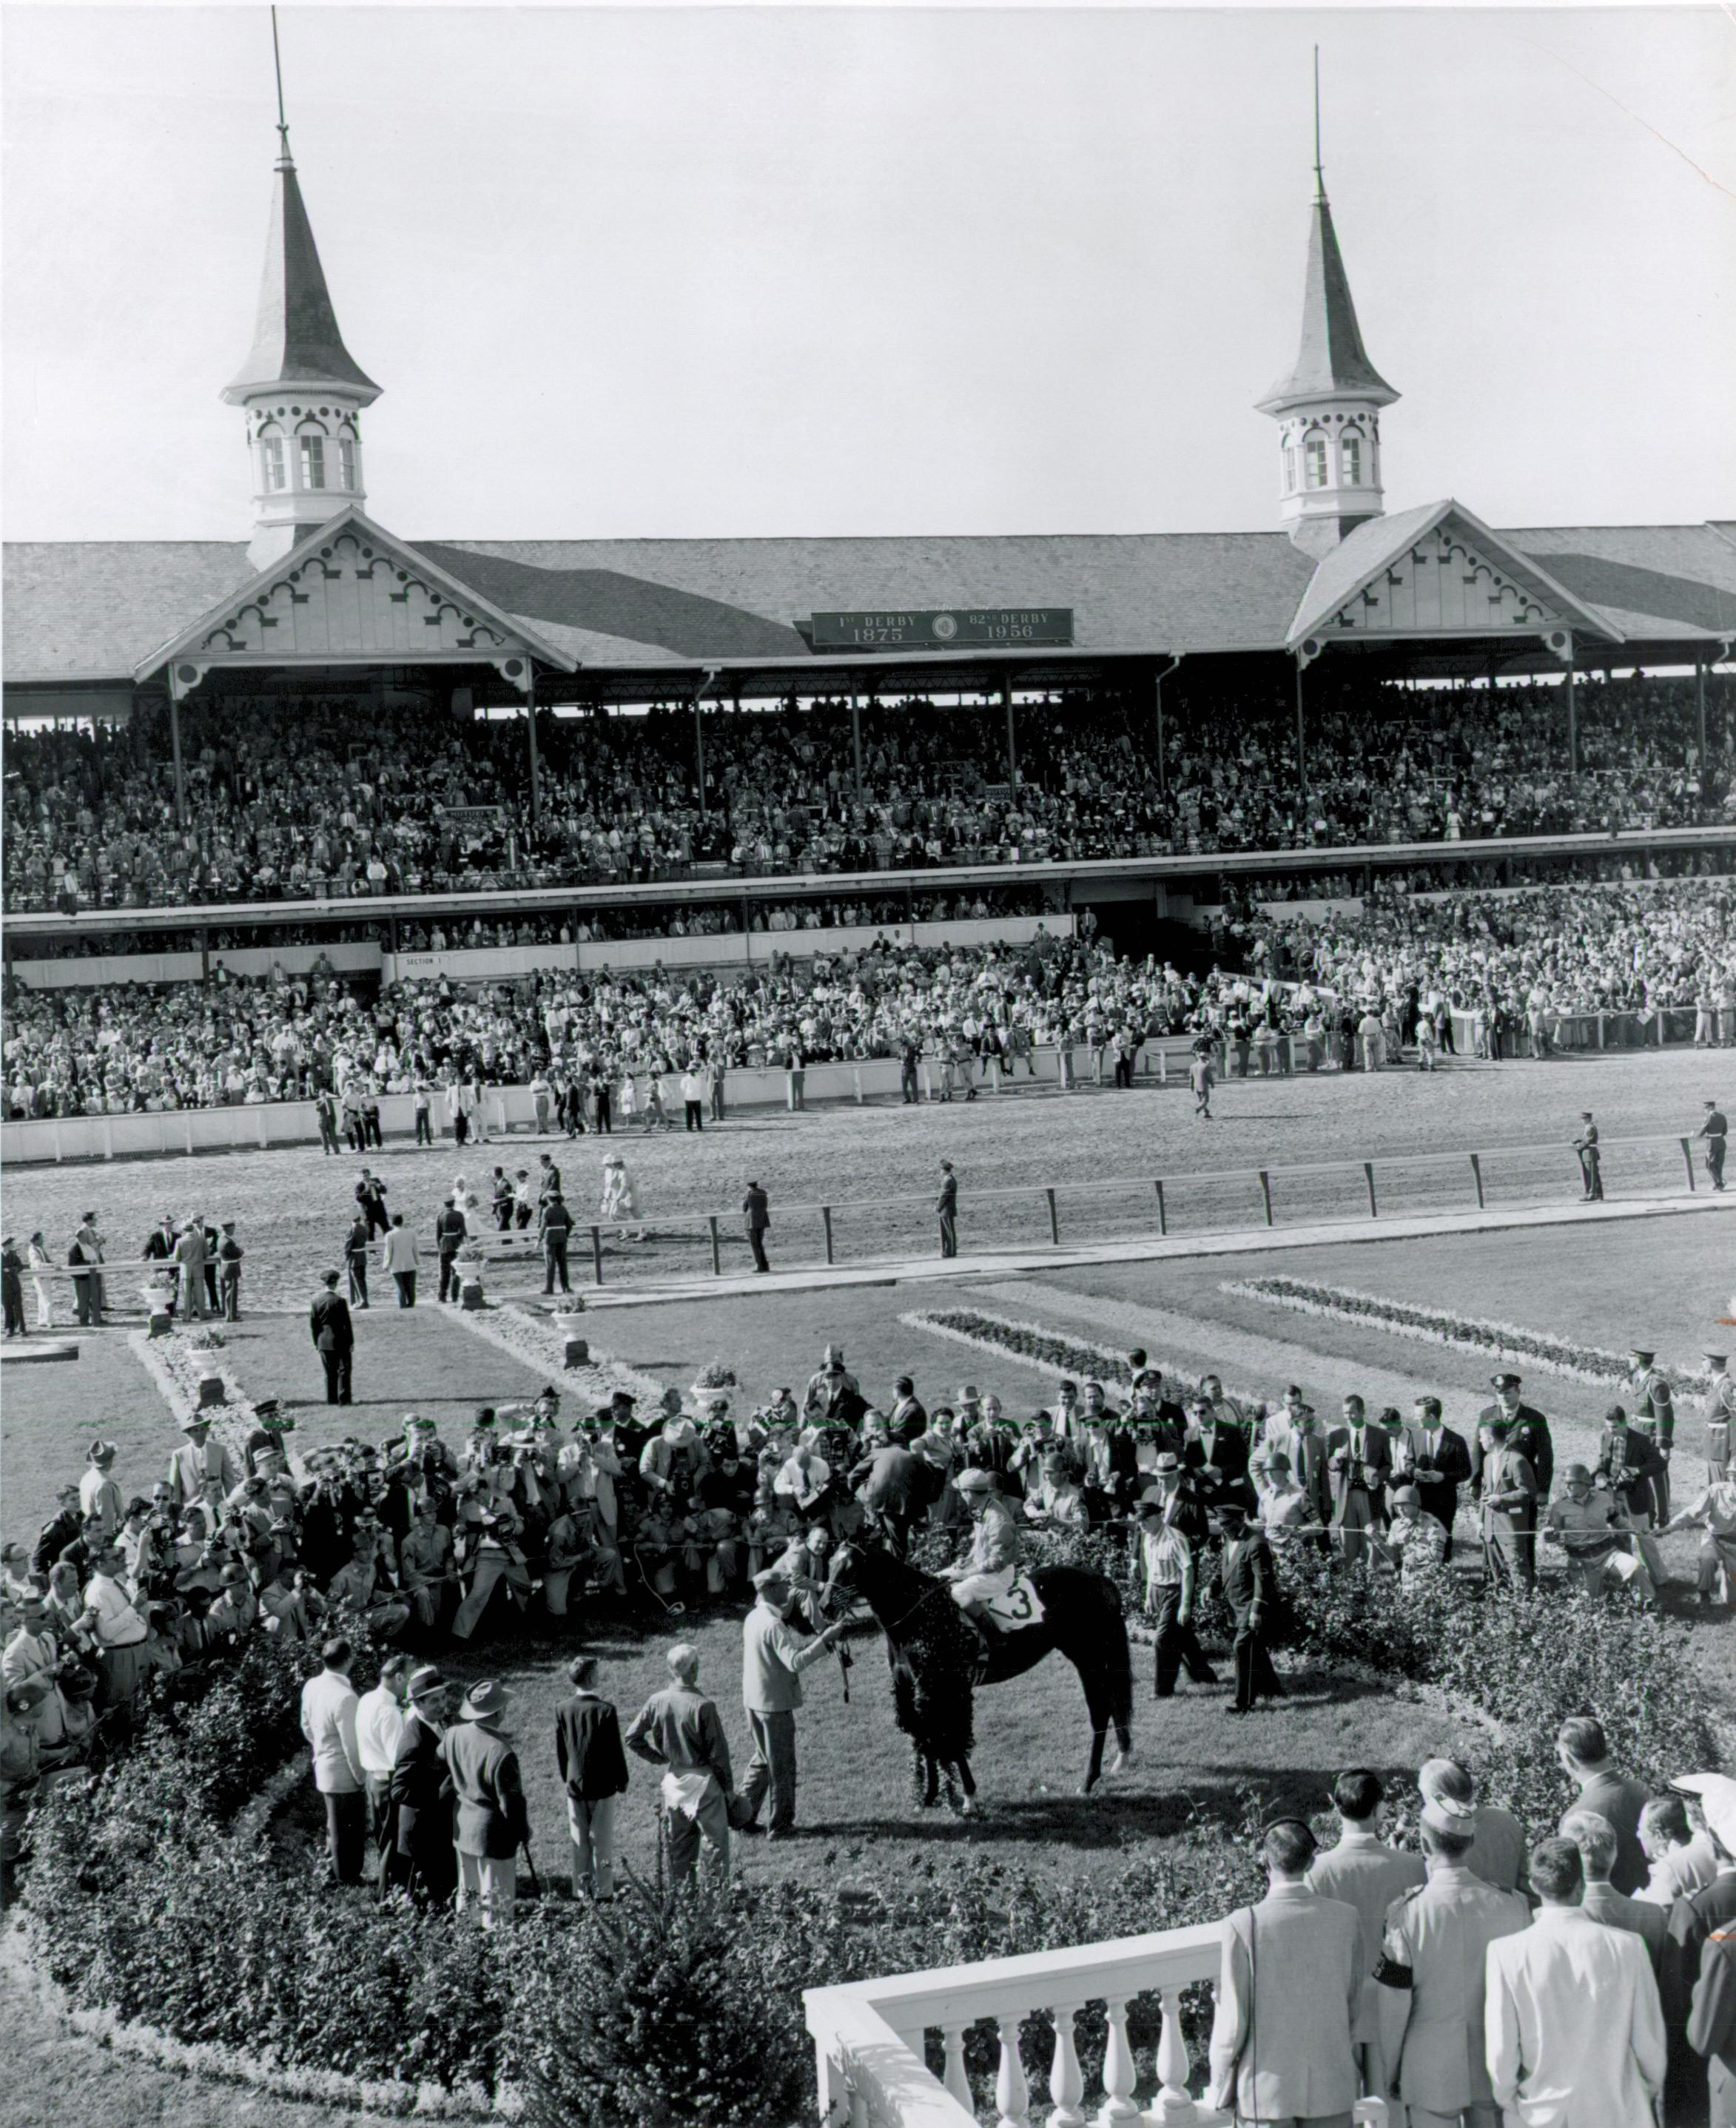 Needles in the Kentucky Derby winner's circle at Churchill Downs.